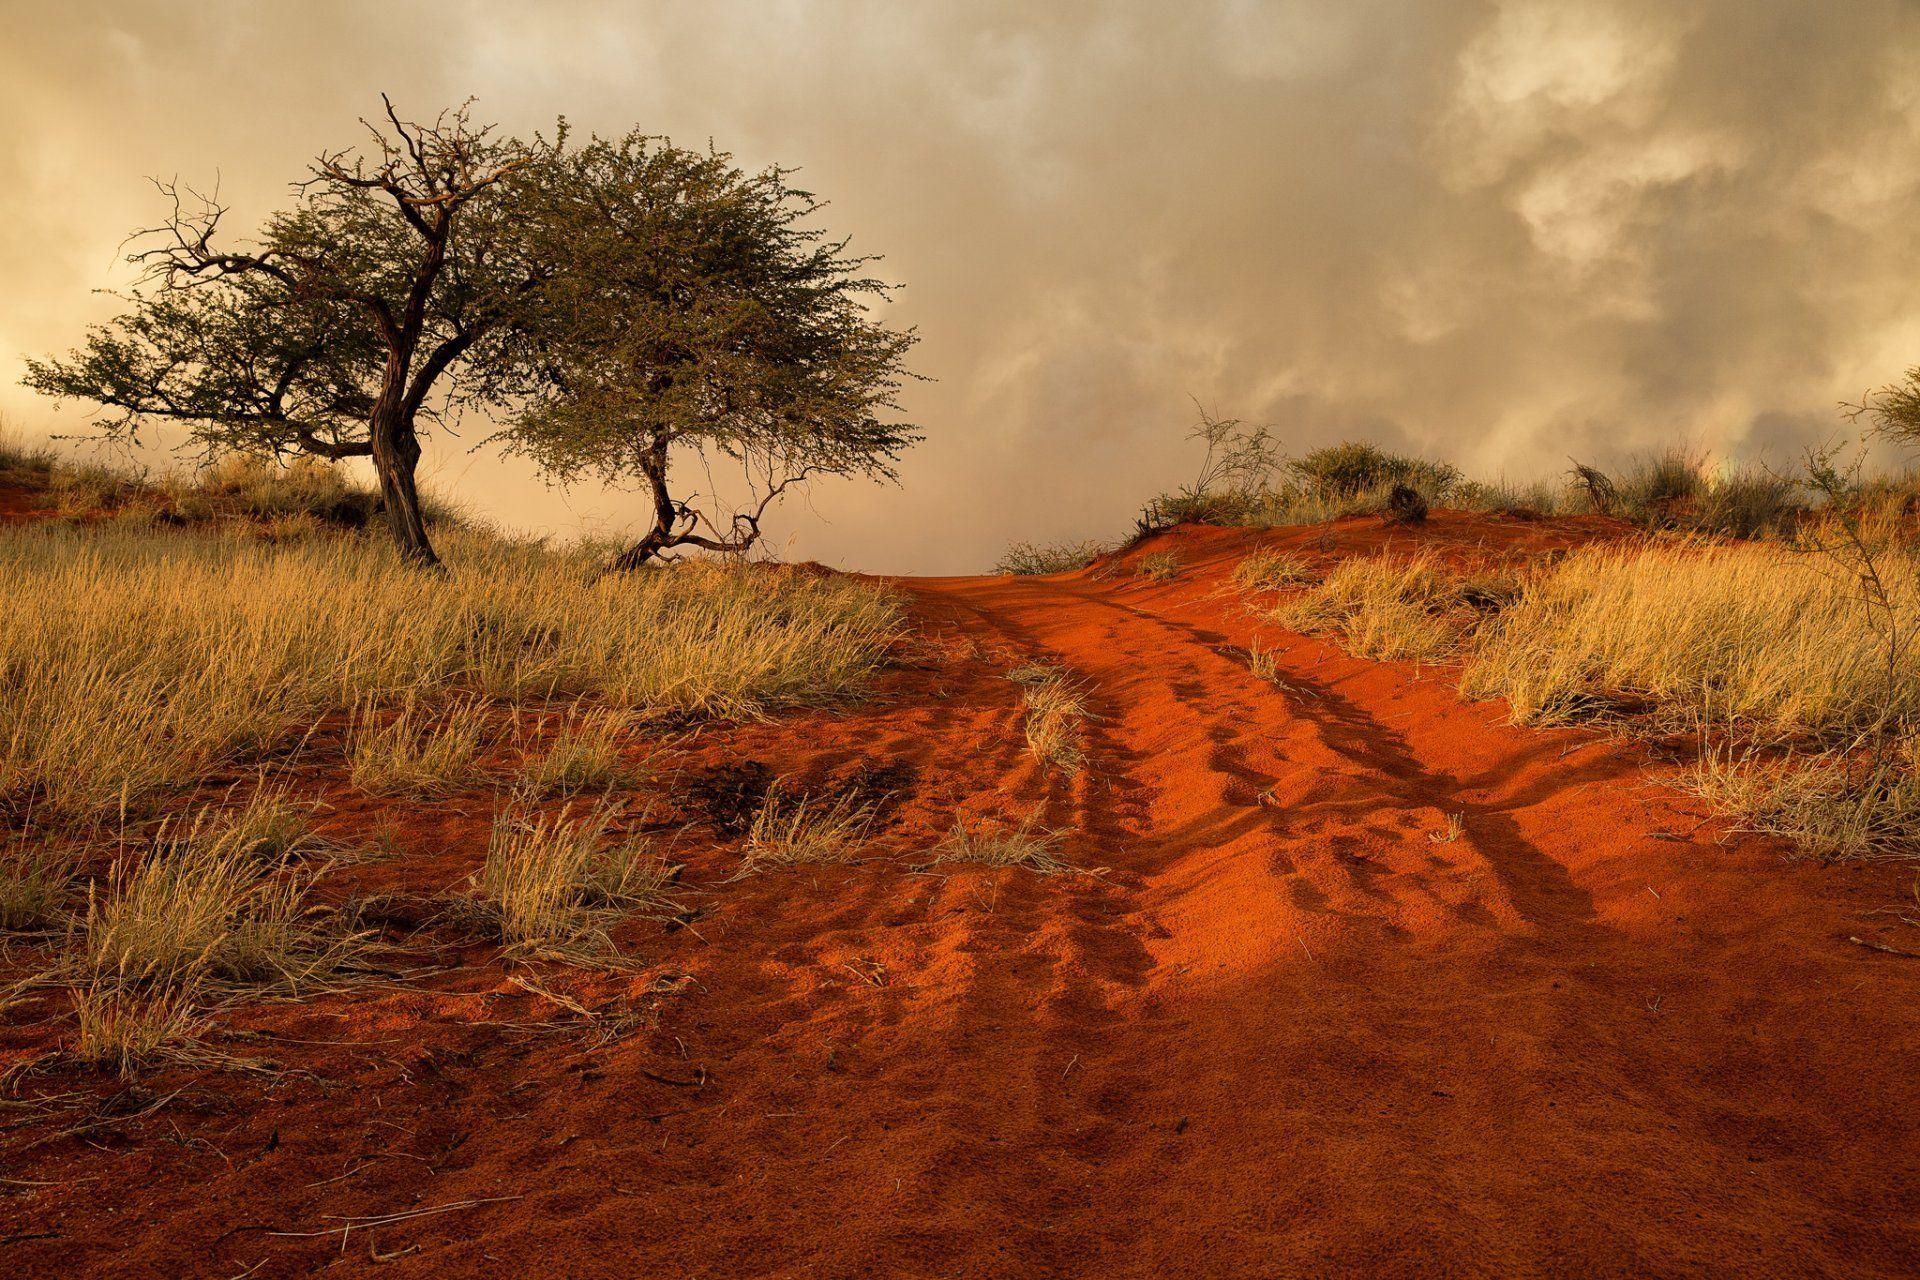 namibia africa hills grass tree sand road HD wallpaper